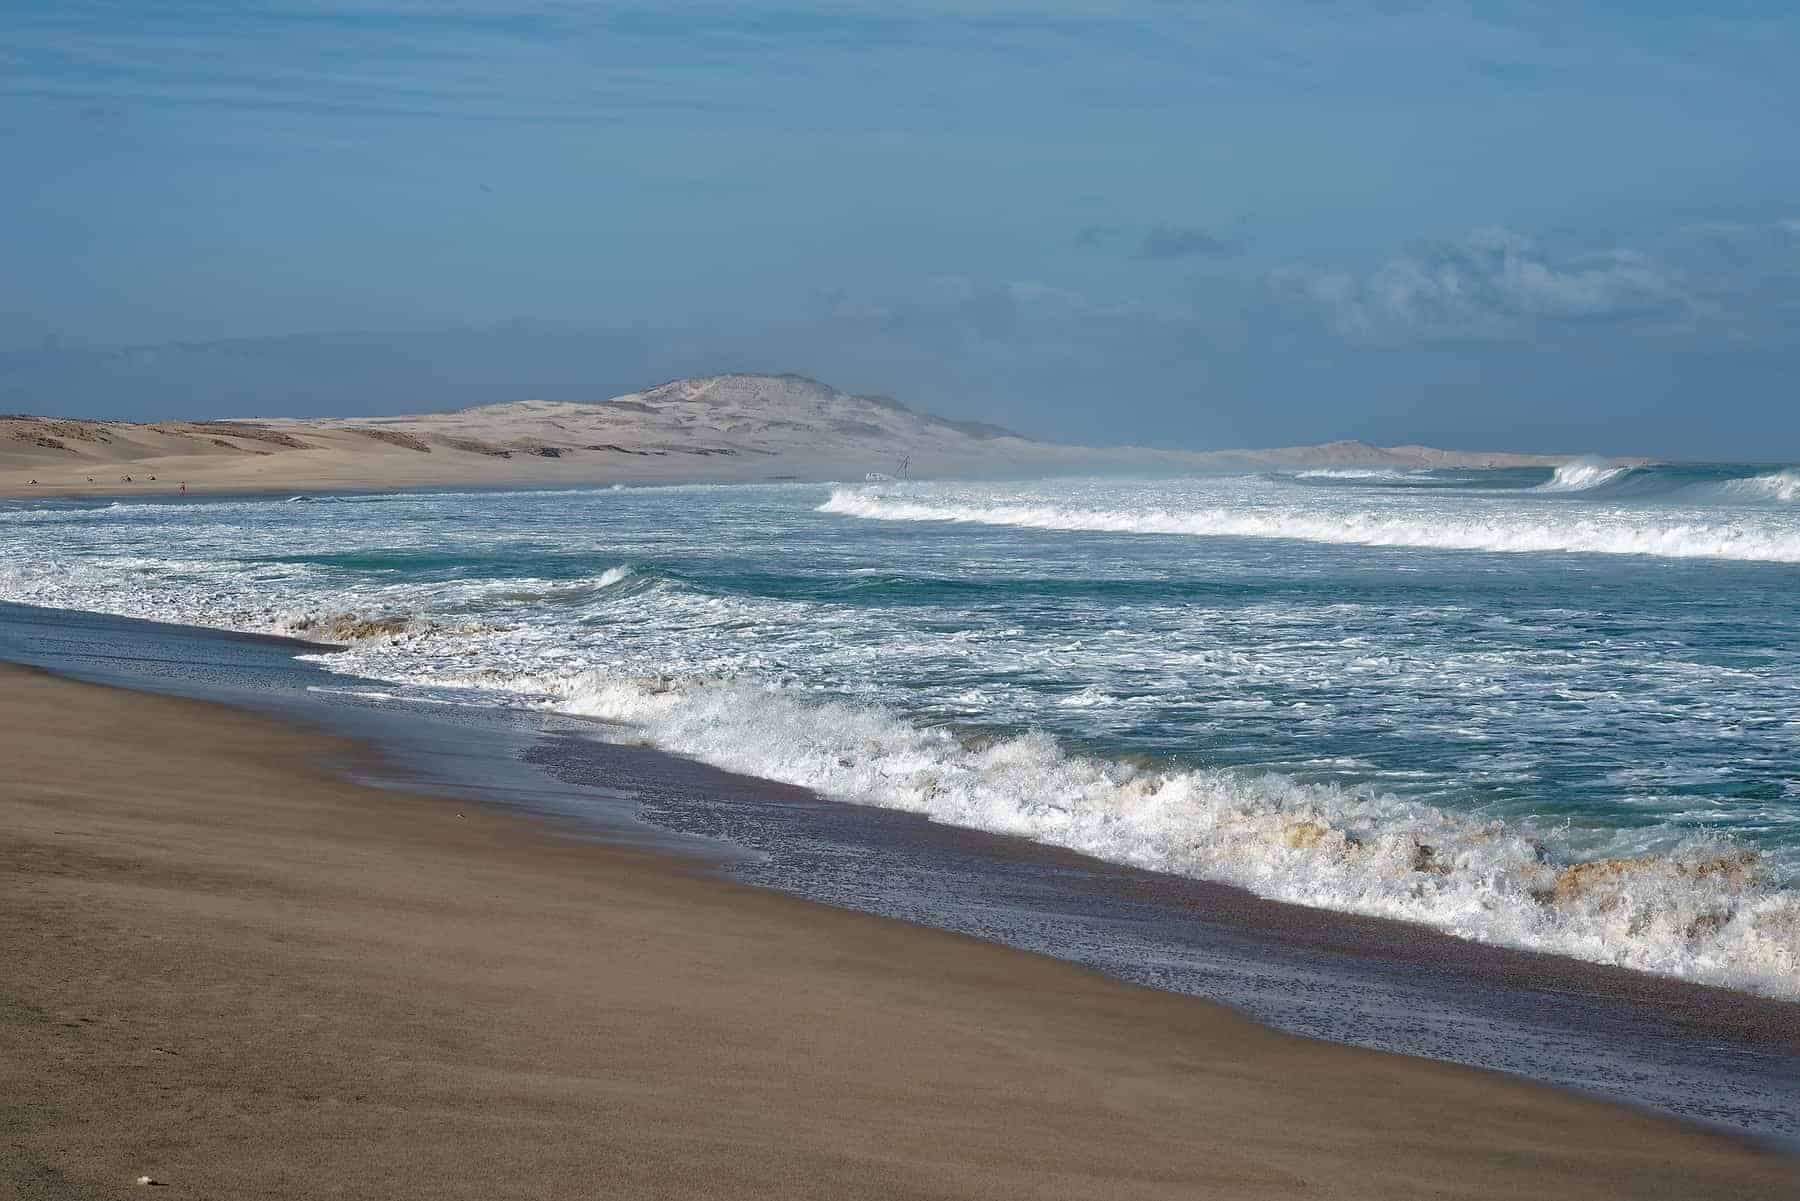 Island Boa Vista in Cape Verde, landscape - seaside